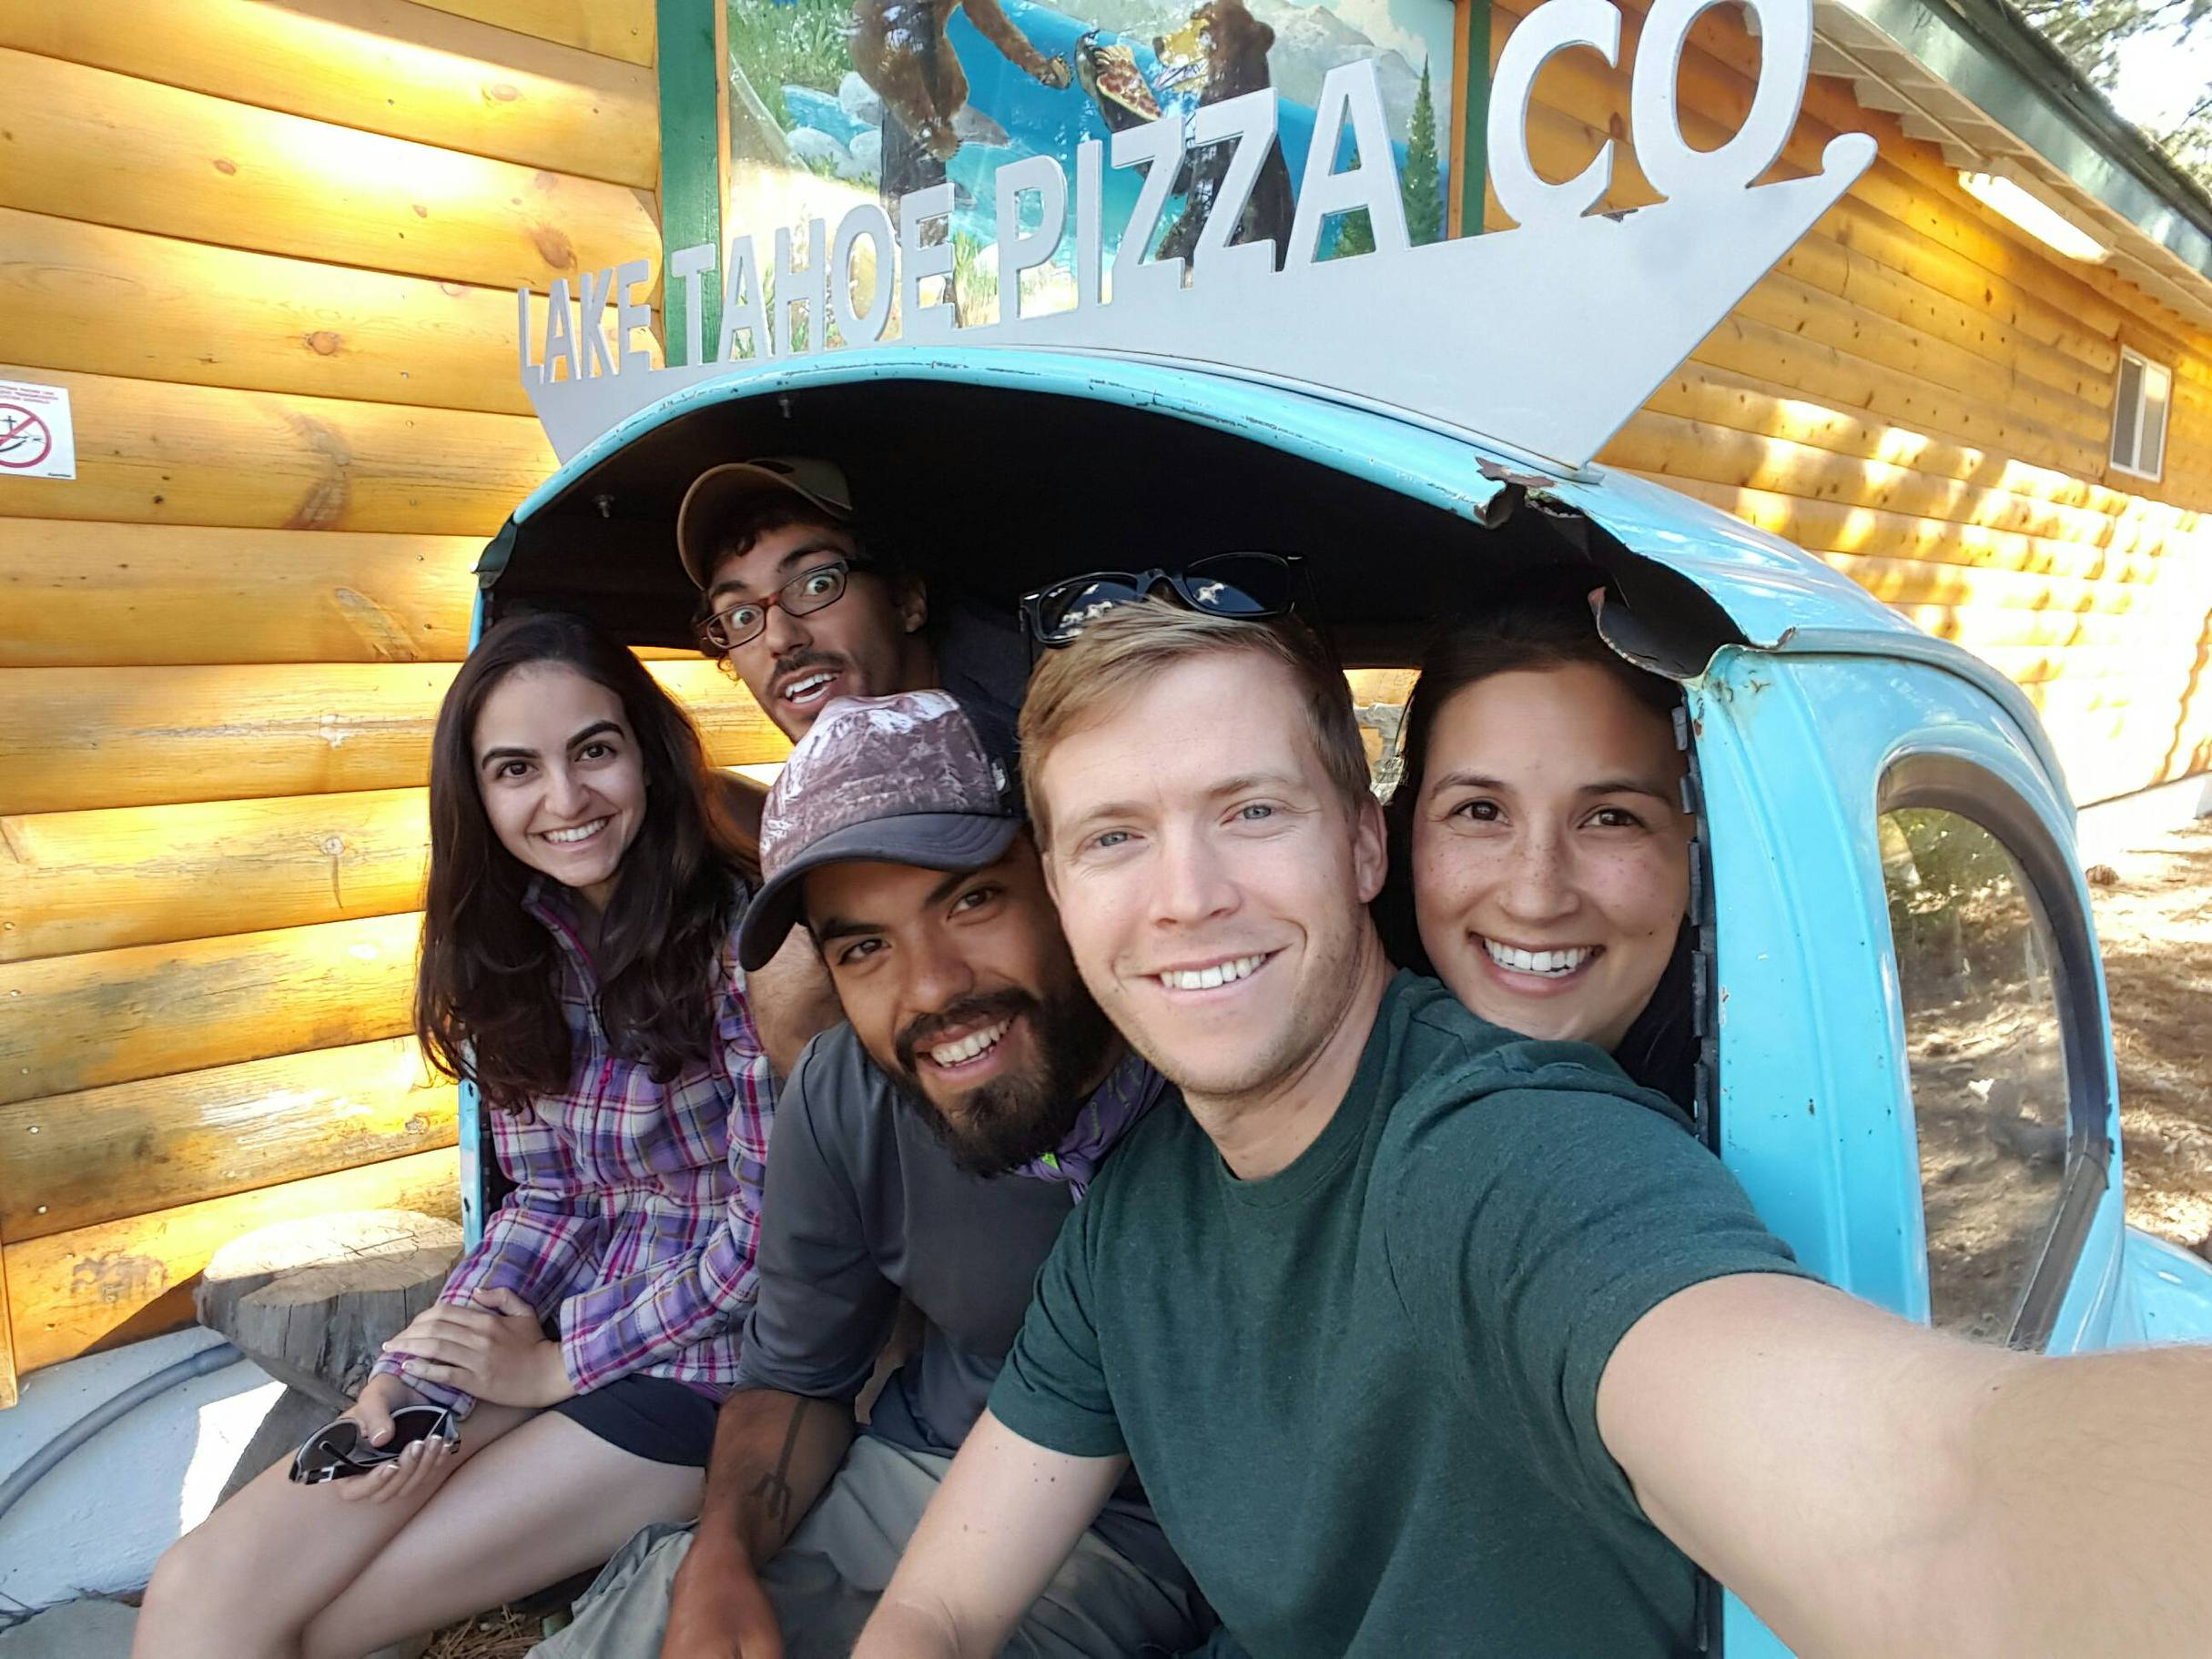 My awesome friends who came to visit me in S. Lake Tahoe (Negar, Keith, Tom, and Alyssa)